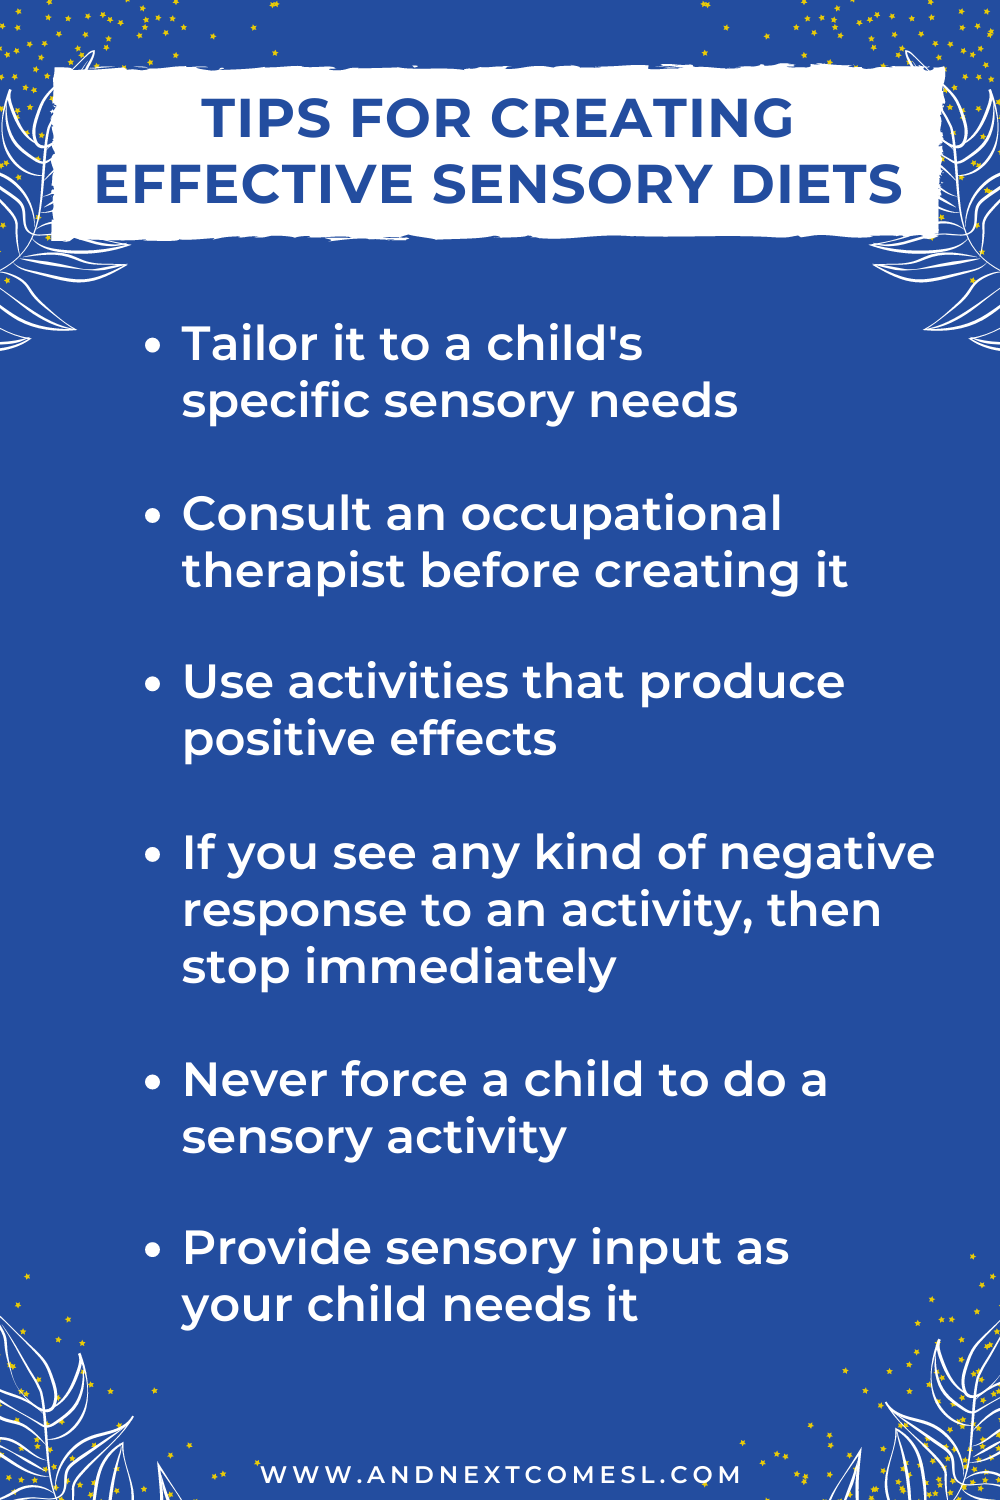 Tips for creating effective sensory diets for kids